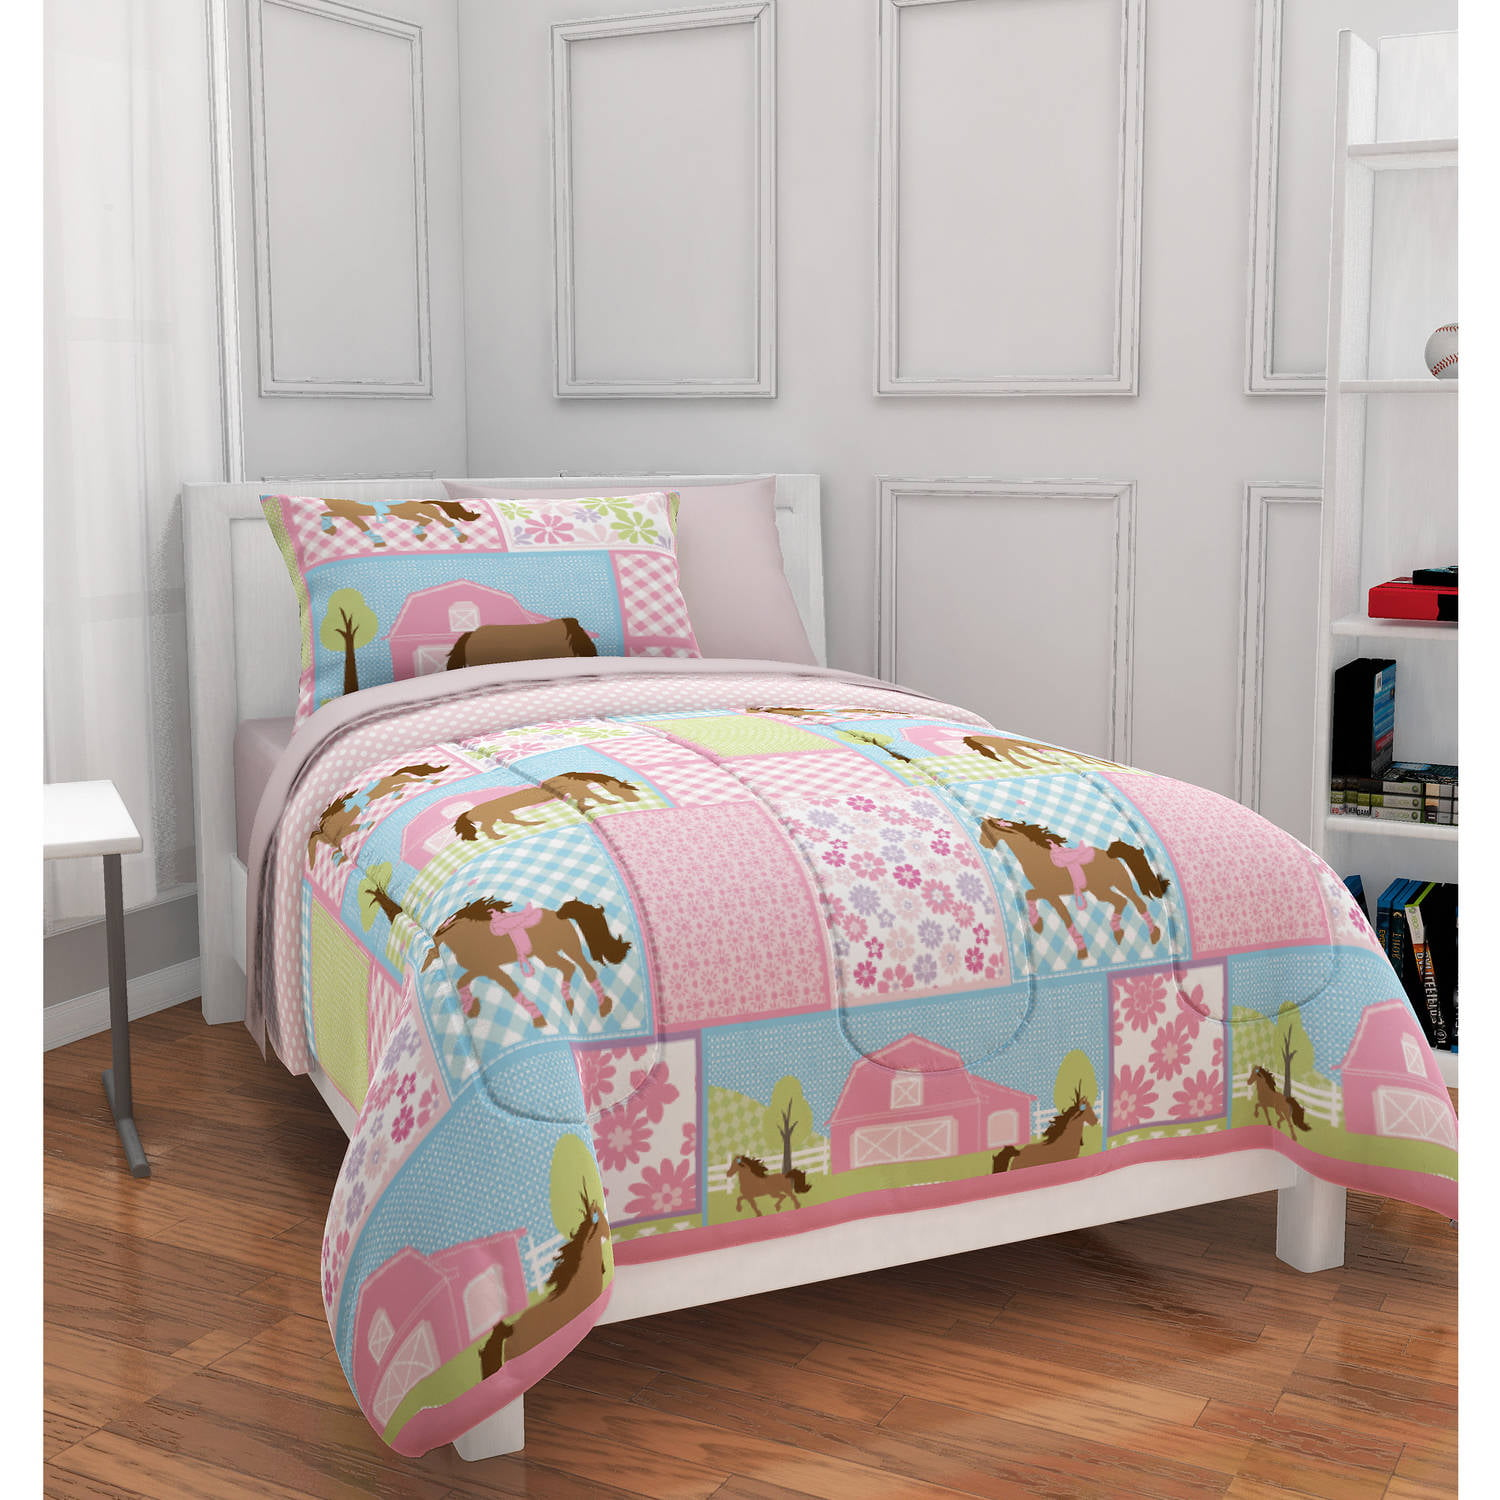 Bedding sets for teenage girls walmart - Bedding Sets For Teenage Girls Walmart 7